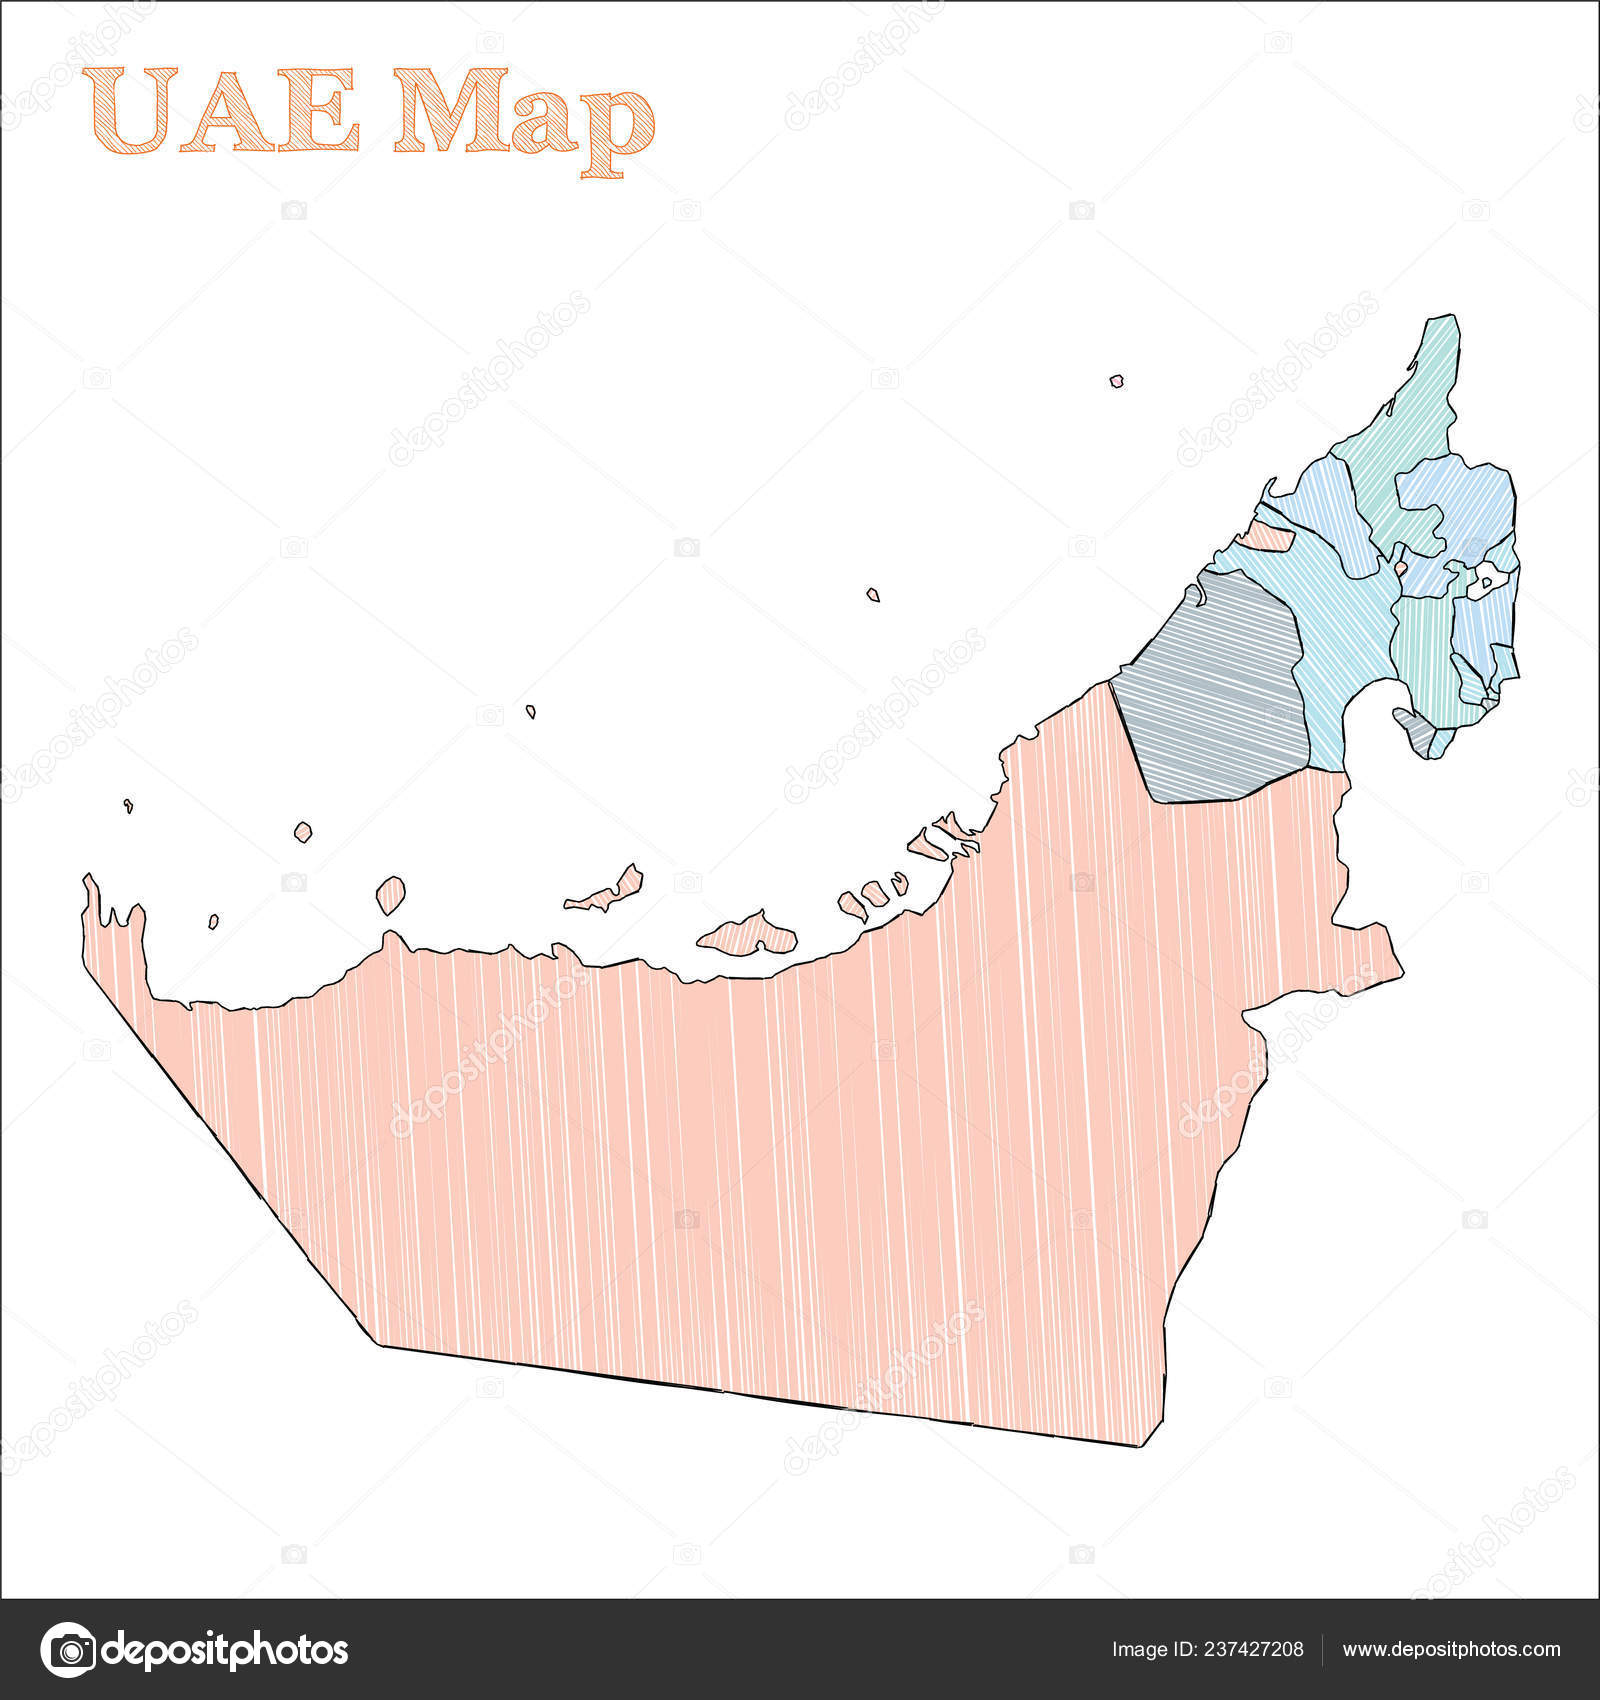 UAE handdrawn map Colourful sketchy country outline Alive ... on countries of uae, cities of uae, regions of uae, states of uae, geographical features of uae, national flag of uae, peninsulas of uae,